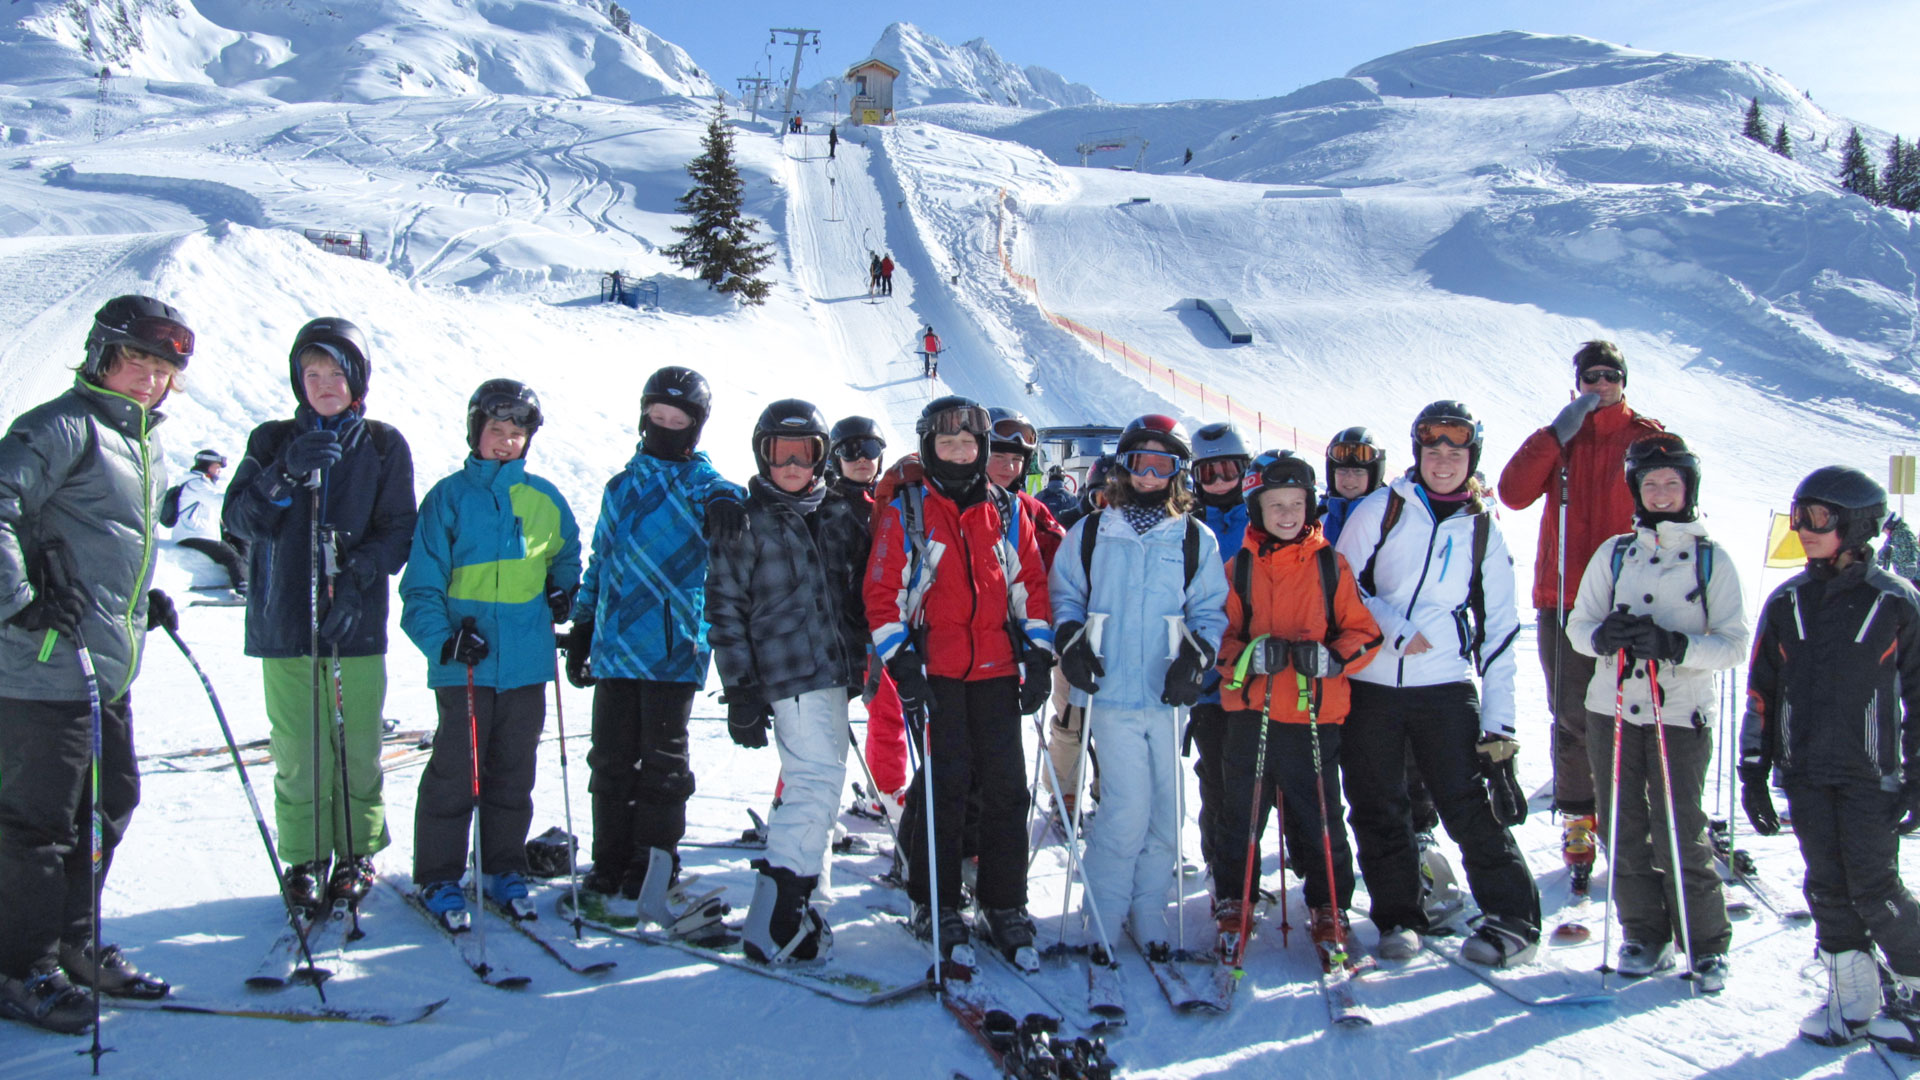 Additional skiing courses are offered in winter